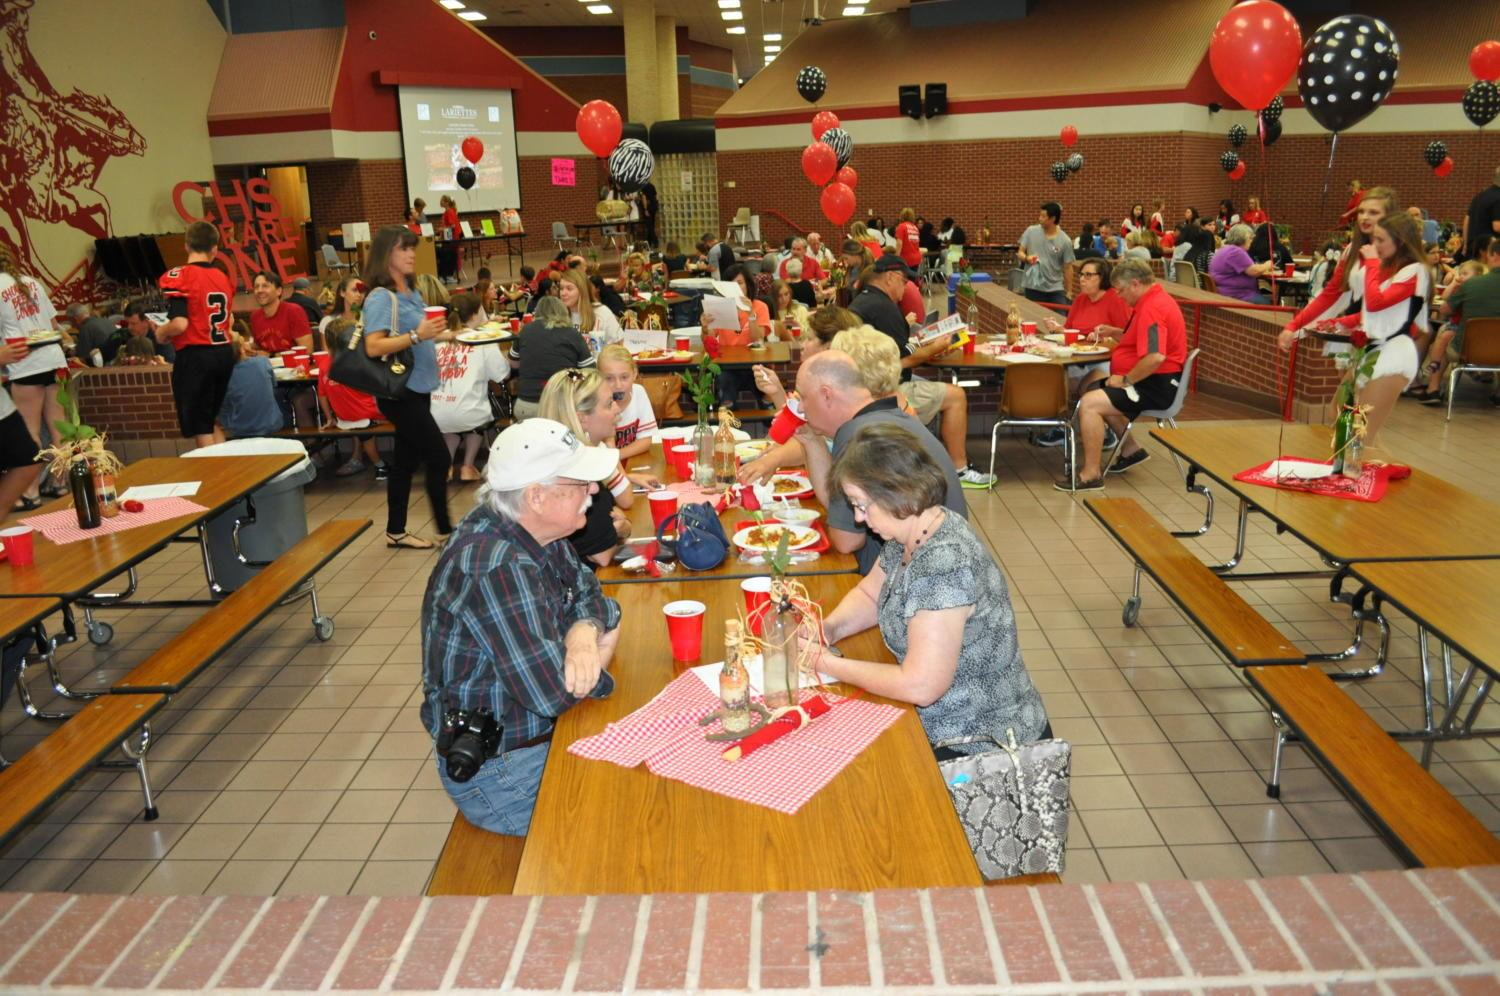 Coppell+families+gather+together+to+enjoy+a+long-time+tradition%3B+the+Spaghetti+Dinner+hosted+by+the+Coppell+High+School+Lariettes.+The+event+allows+families+to+enjoy+food%2C+fellowship+and+fun+while+supporting+their+school+and+community.+Photo+by+Nolan+Sanders+